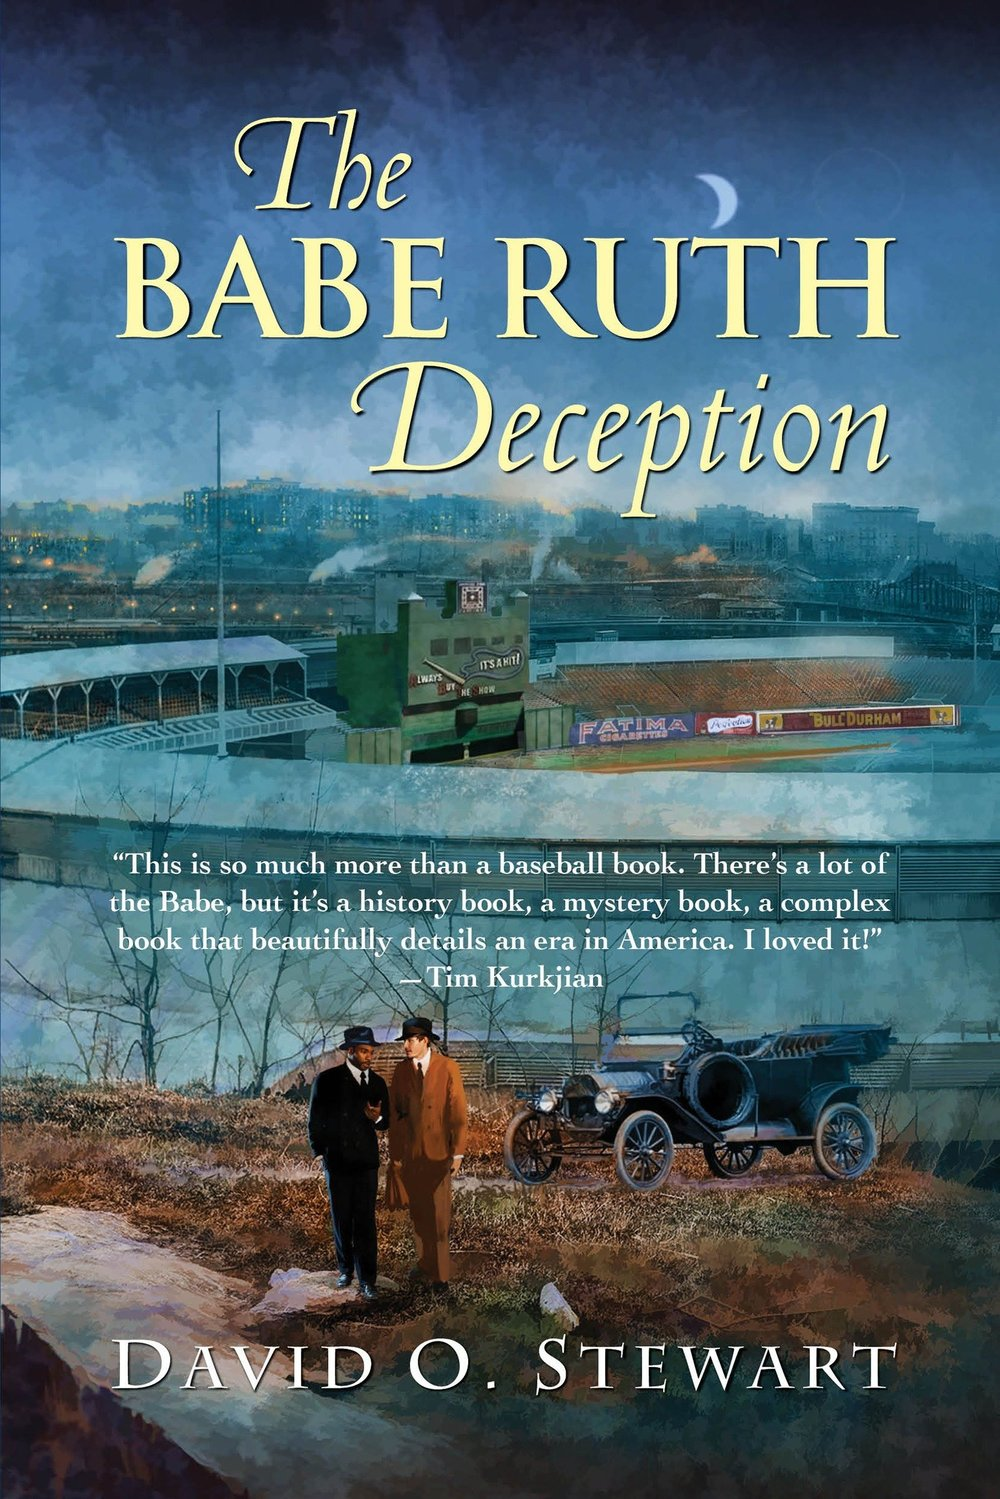 Copy of The Babe Ruth Deception